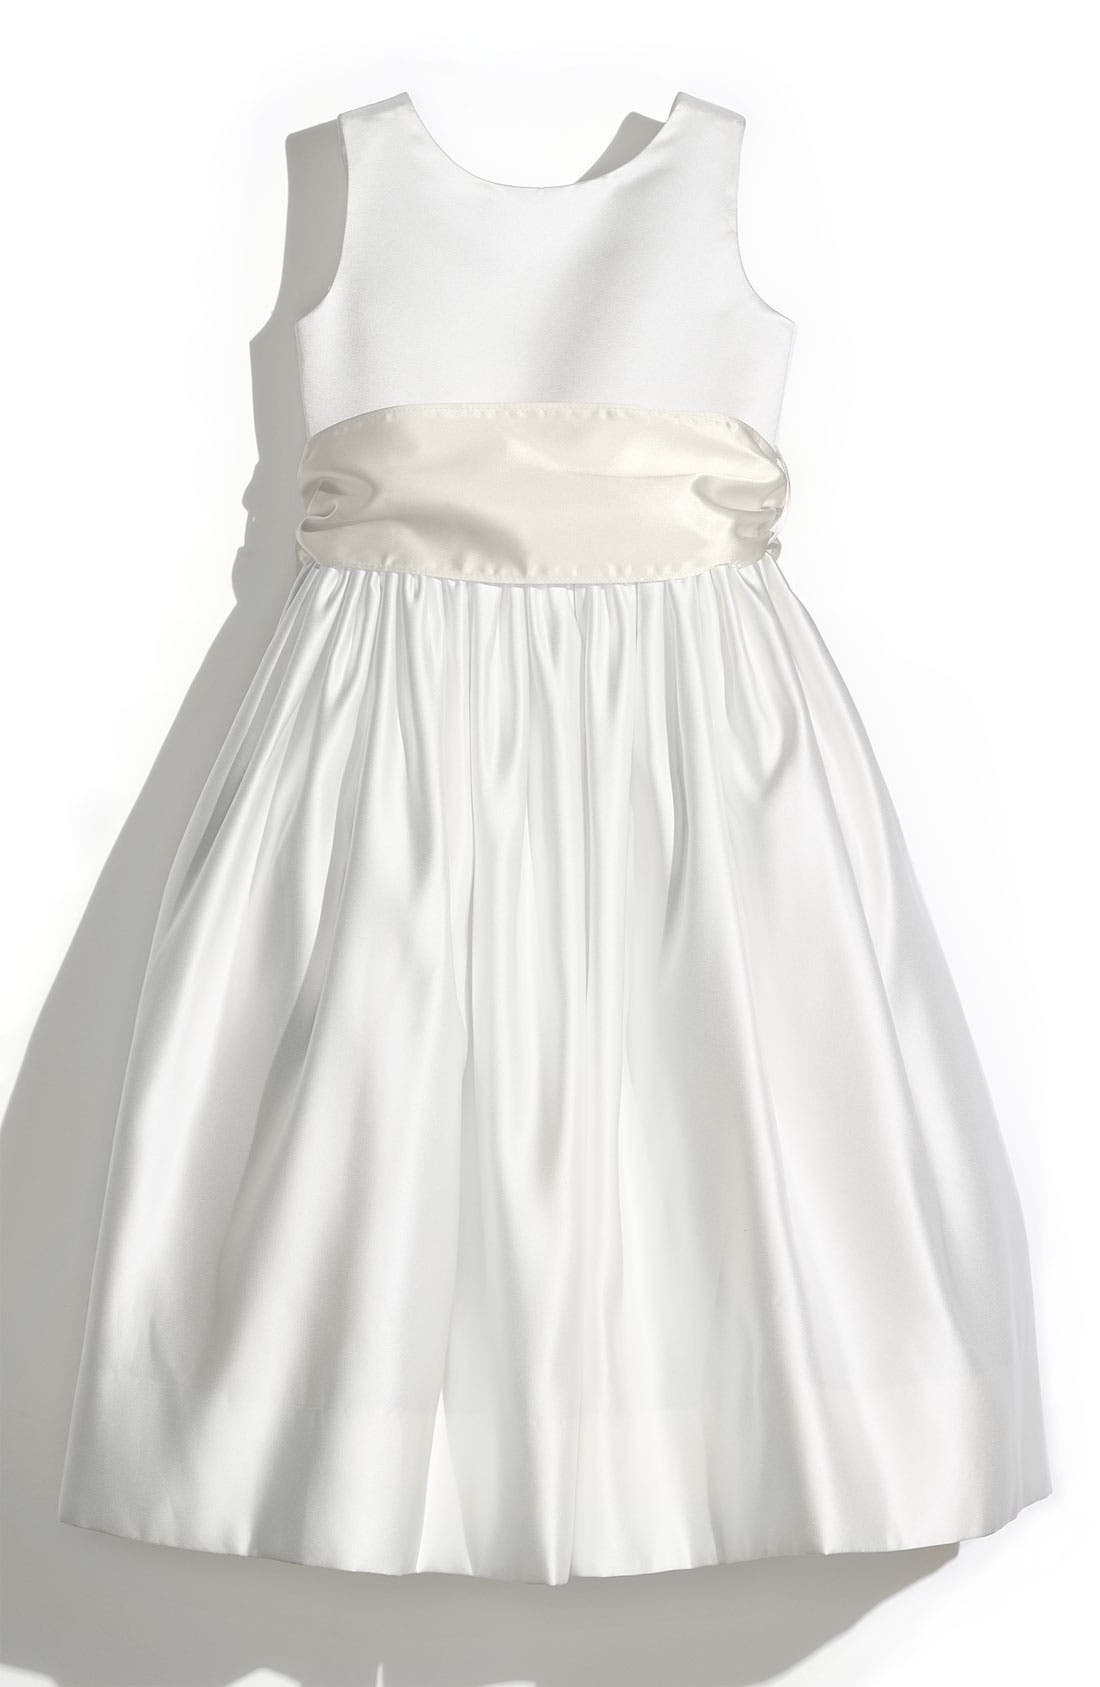 Toddler Girls Us Angels Sleeveless Satin Dress With Contrast Sash Size 4T  Ivory